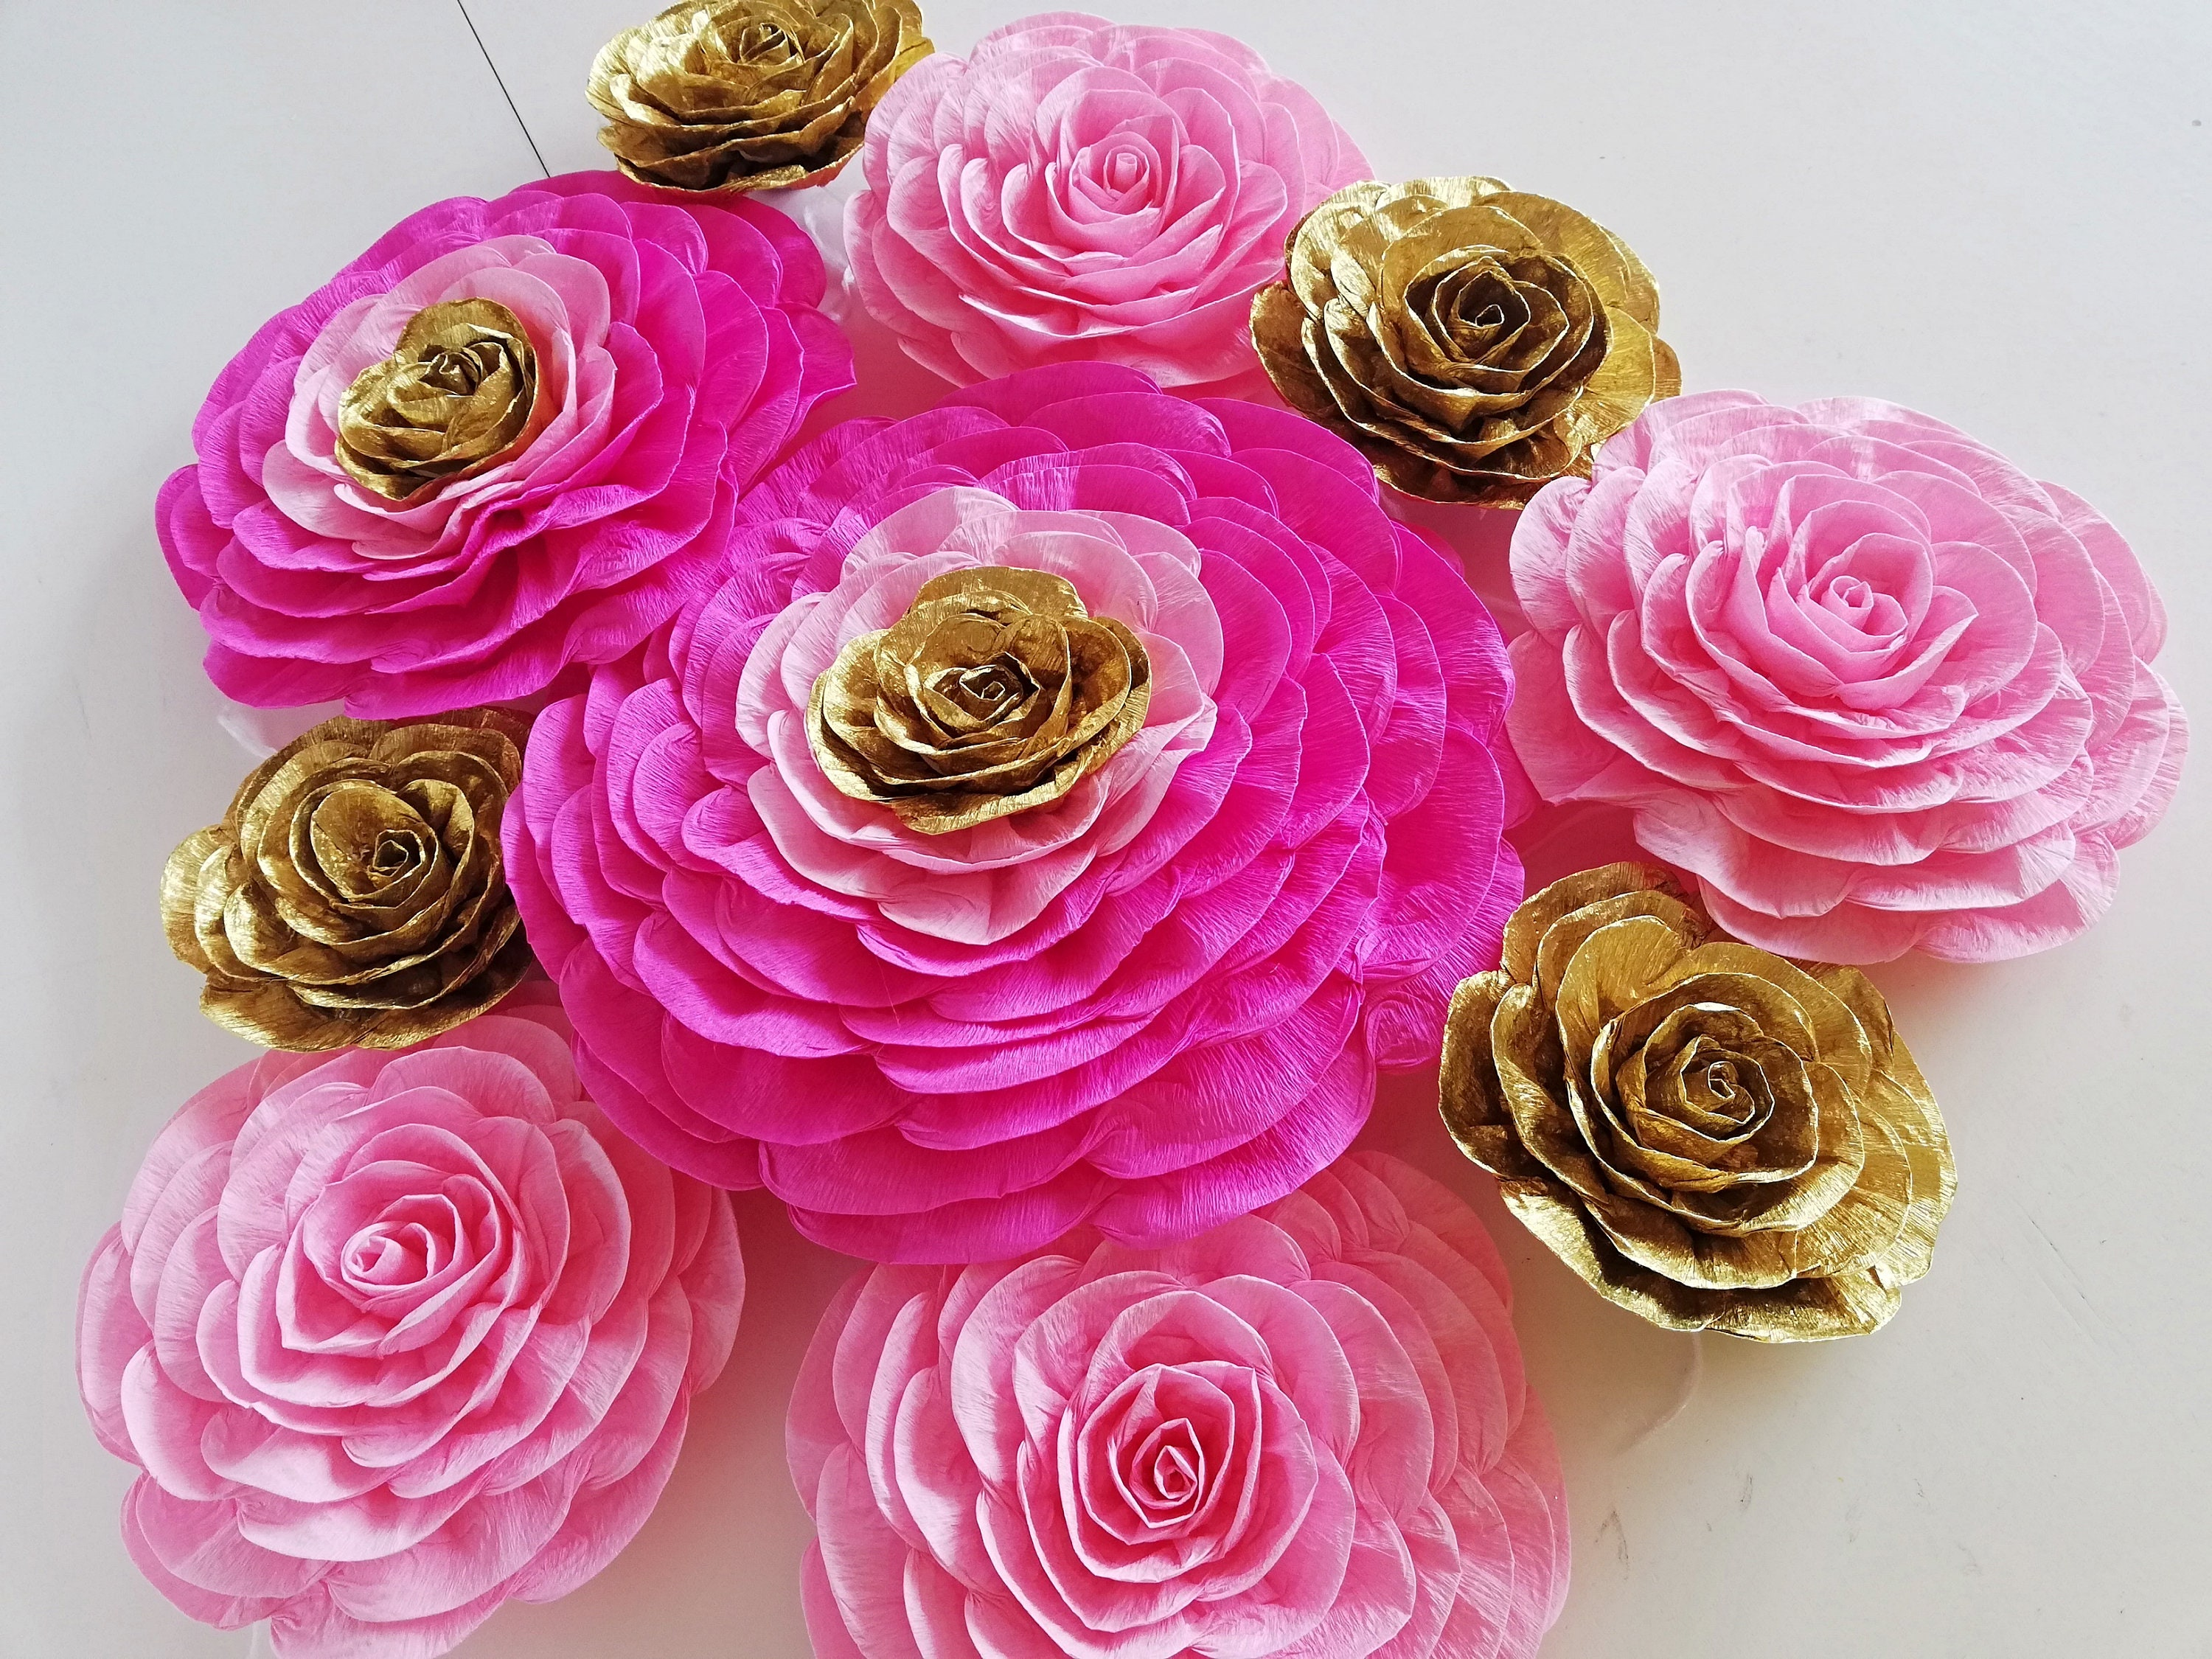 Large Crepe Paper Paper Flowers Wall Decorations Hochzeit Etsy